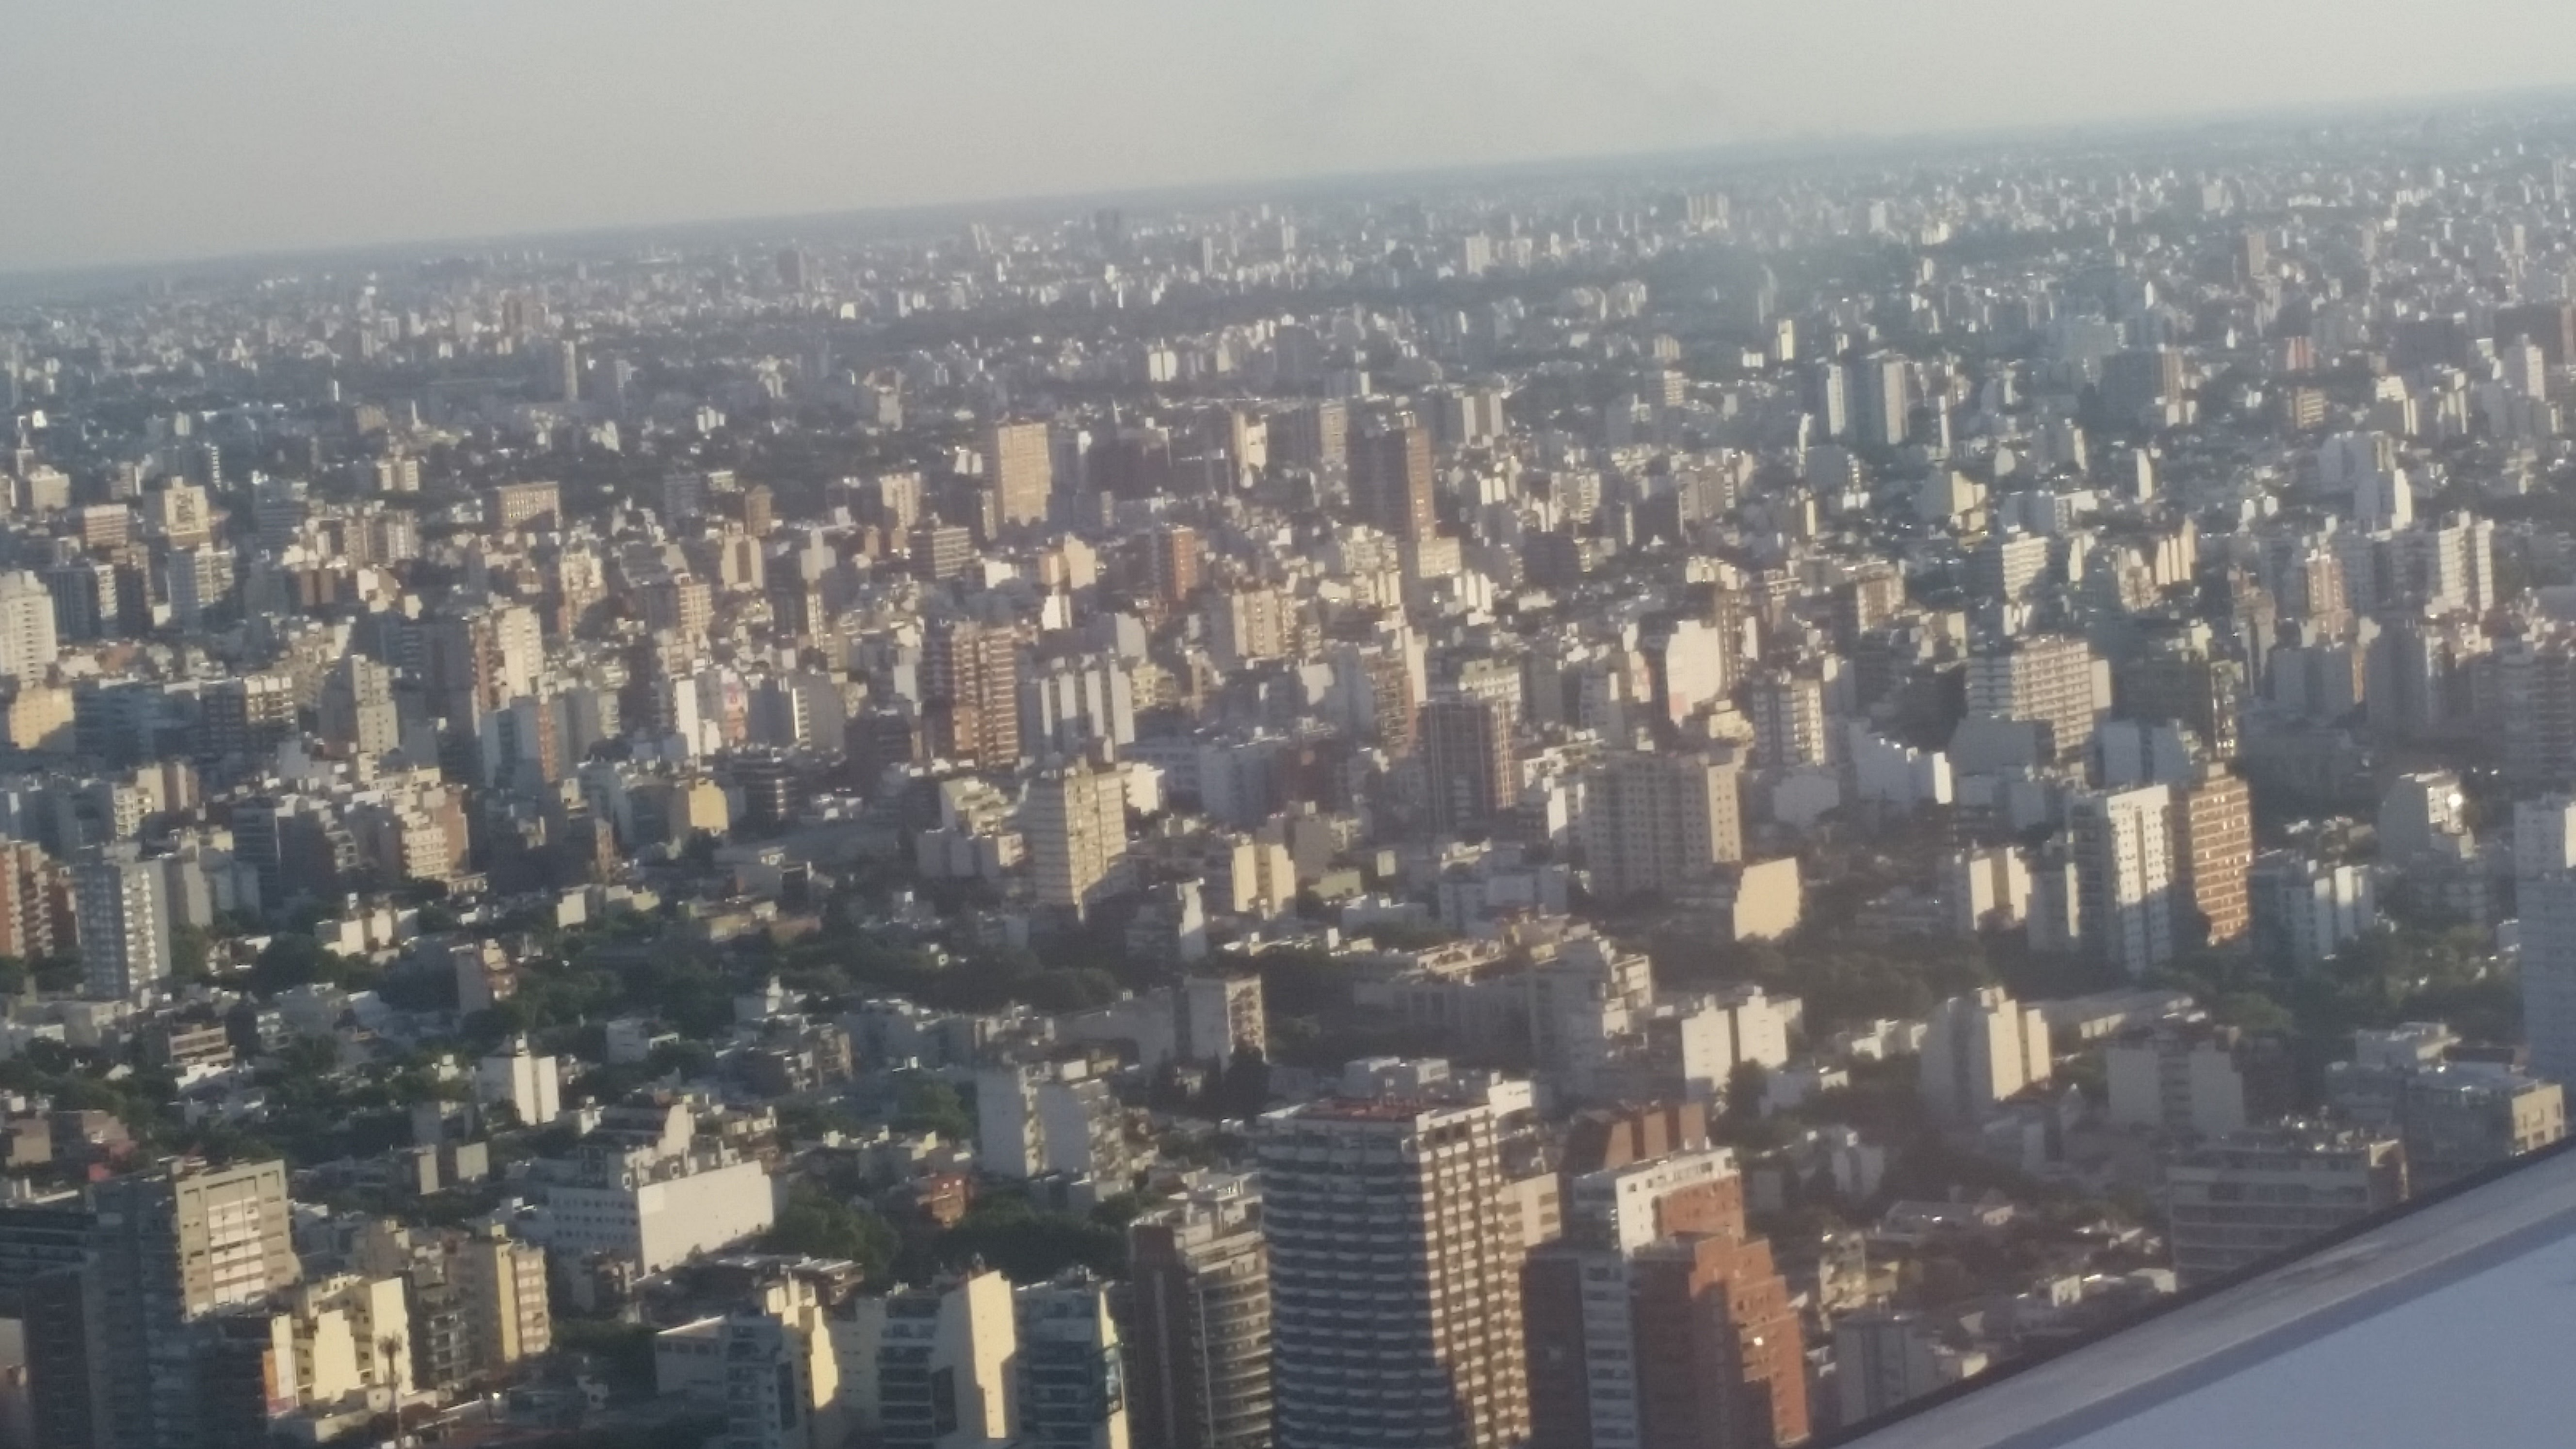 CAPAStudyAbroad_BuenosAires_Spring2017_From Elizabeth Withers Plane Window.jpg